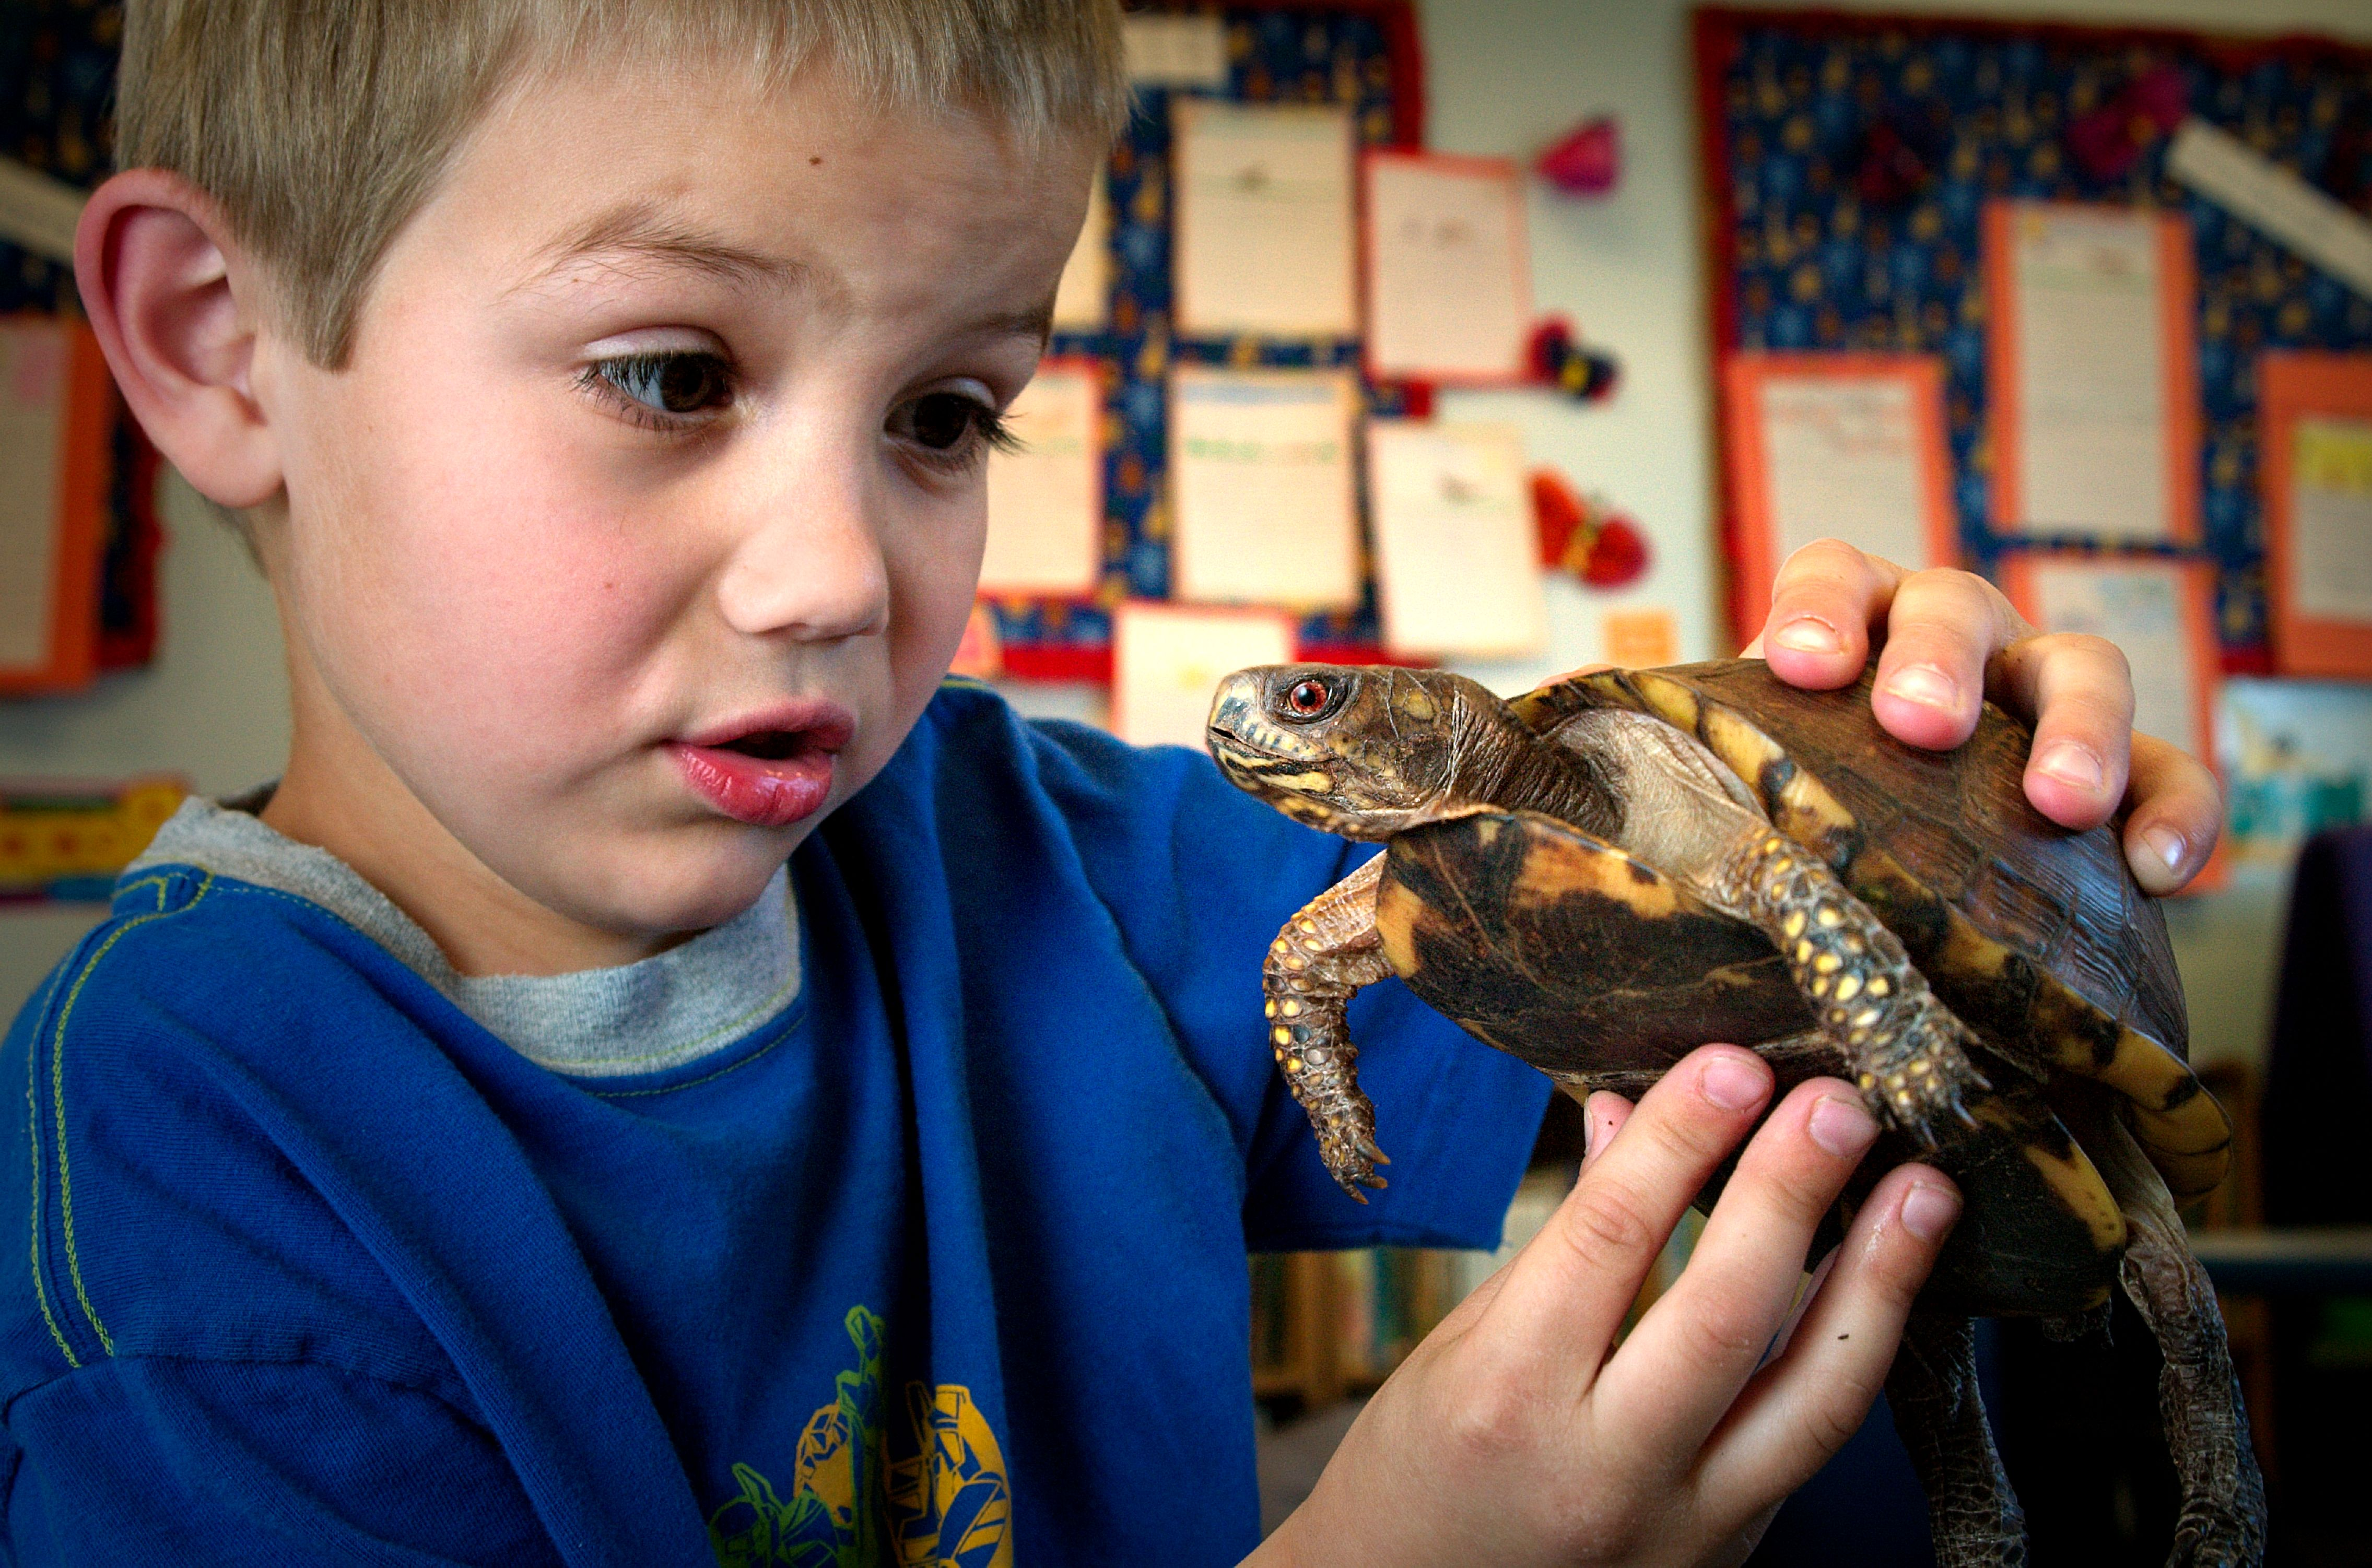 Free Picture Young Boy Holding Box Turtle Portraying